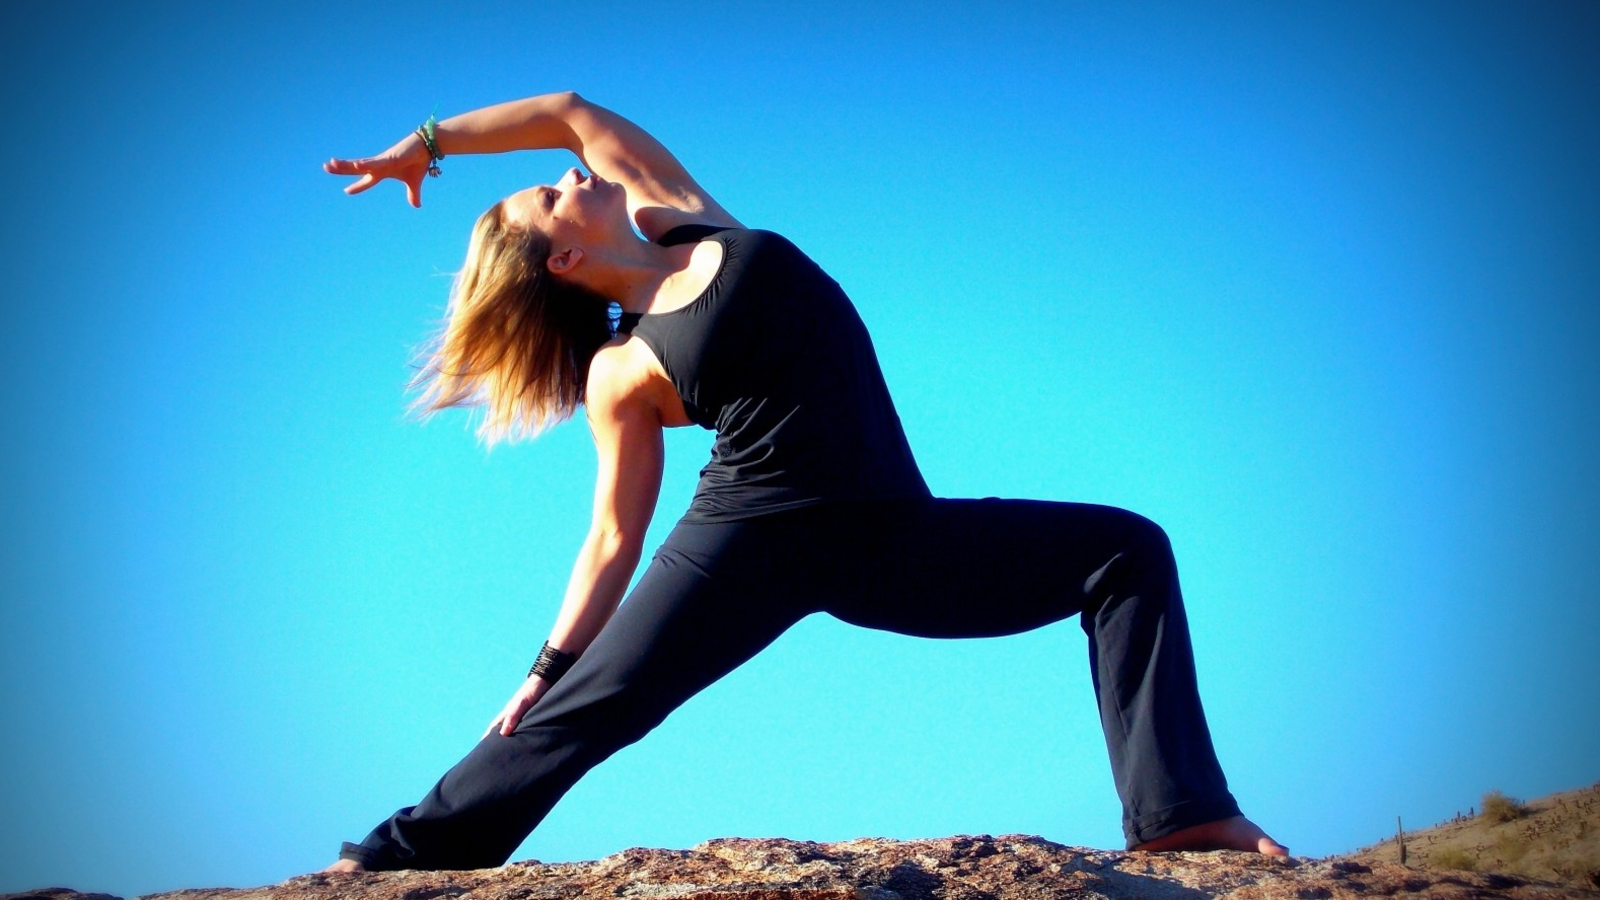 Yoga Burns Serious Calories If You Do It Fast Enough ...